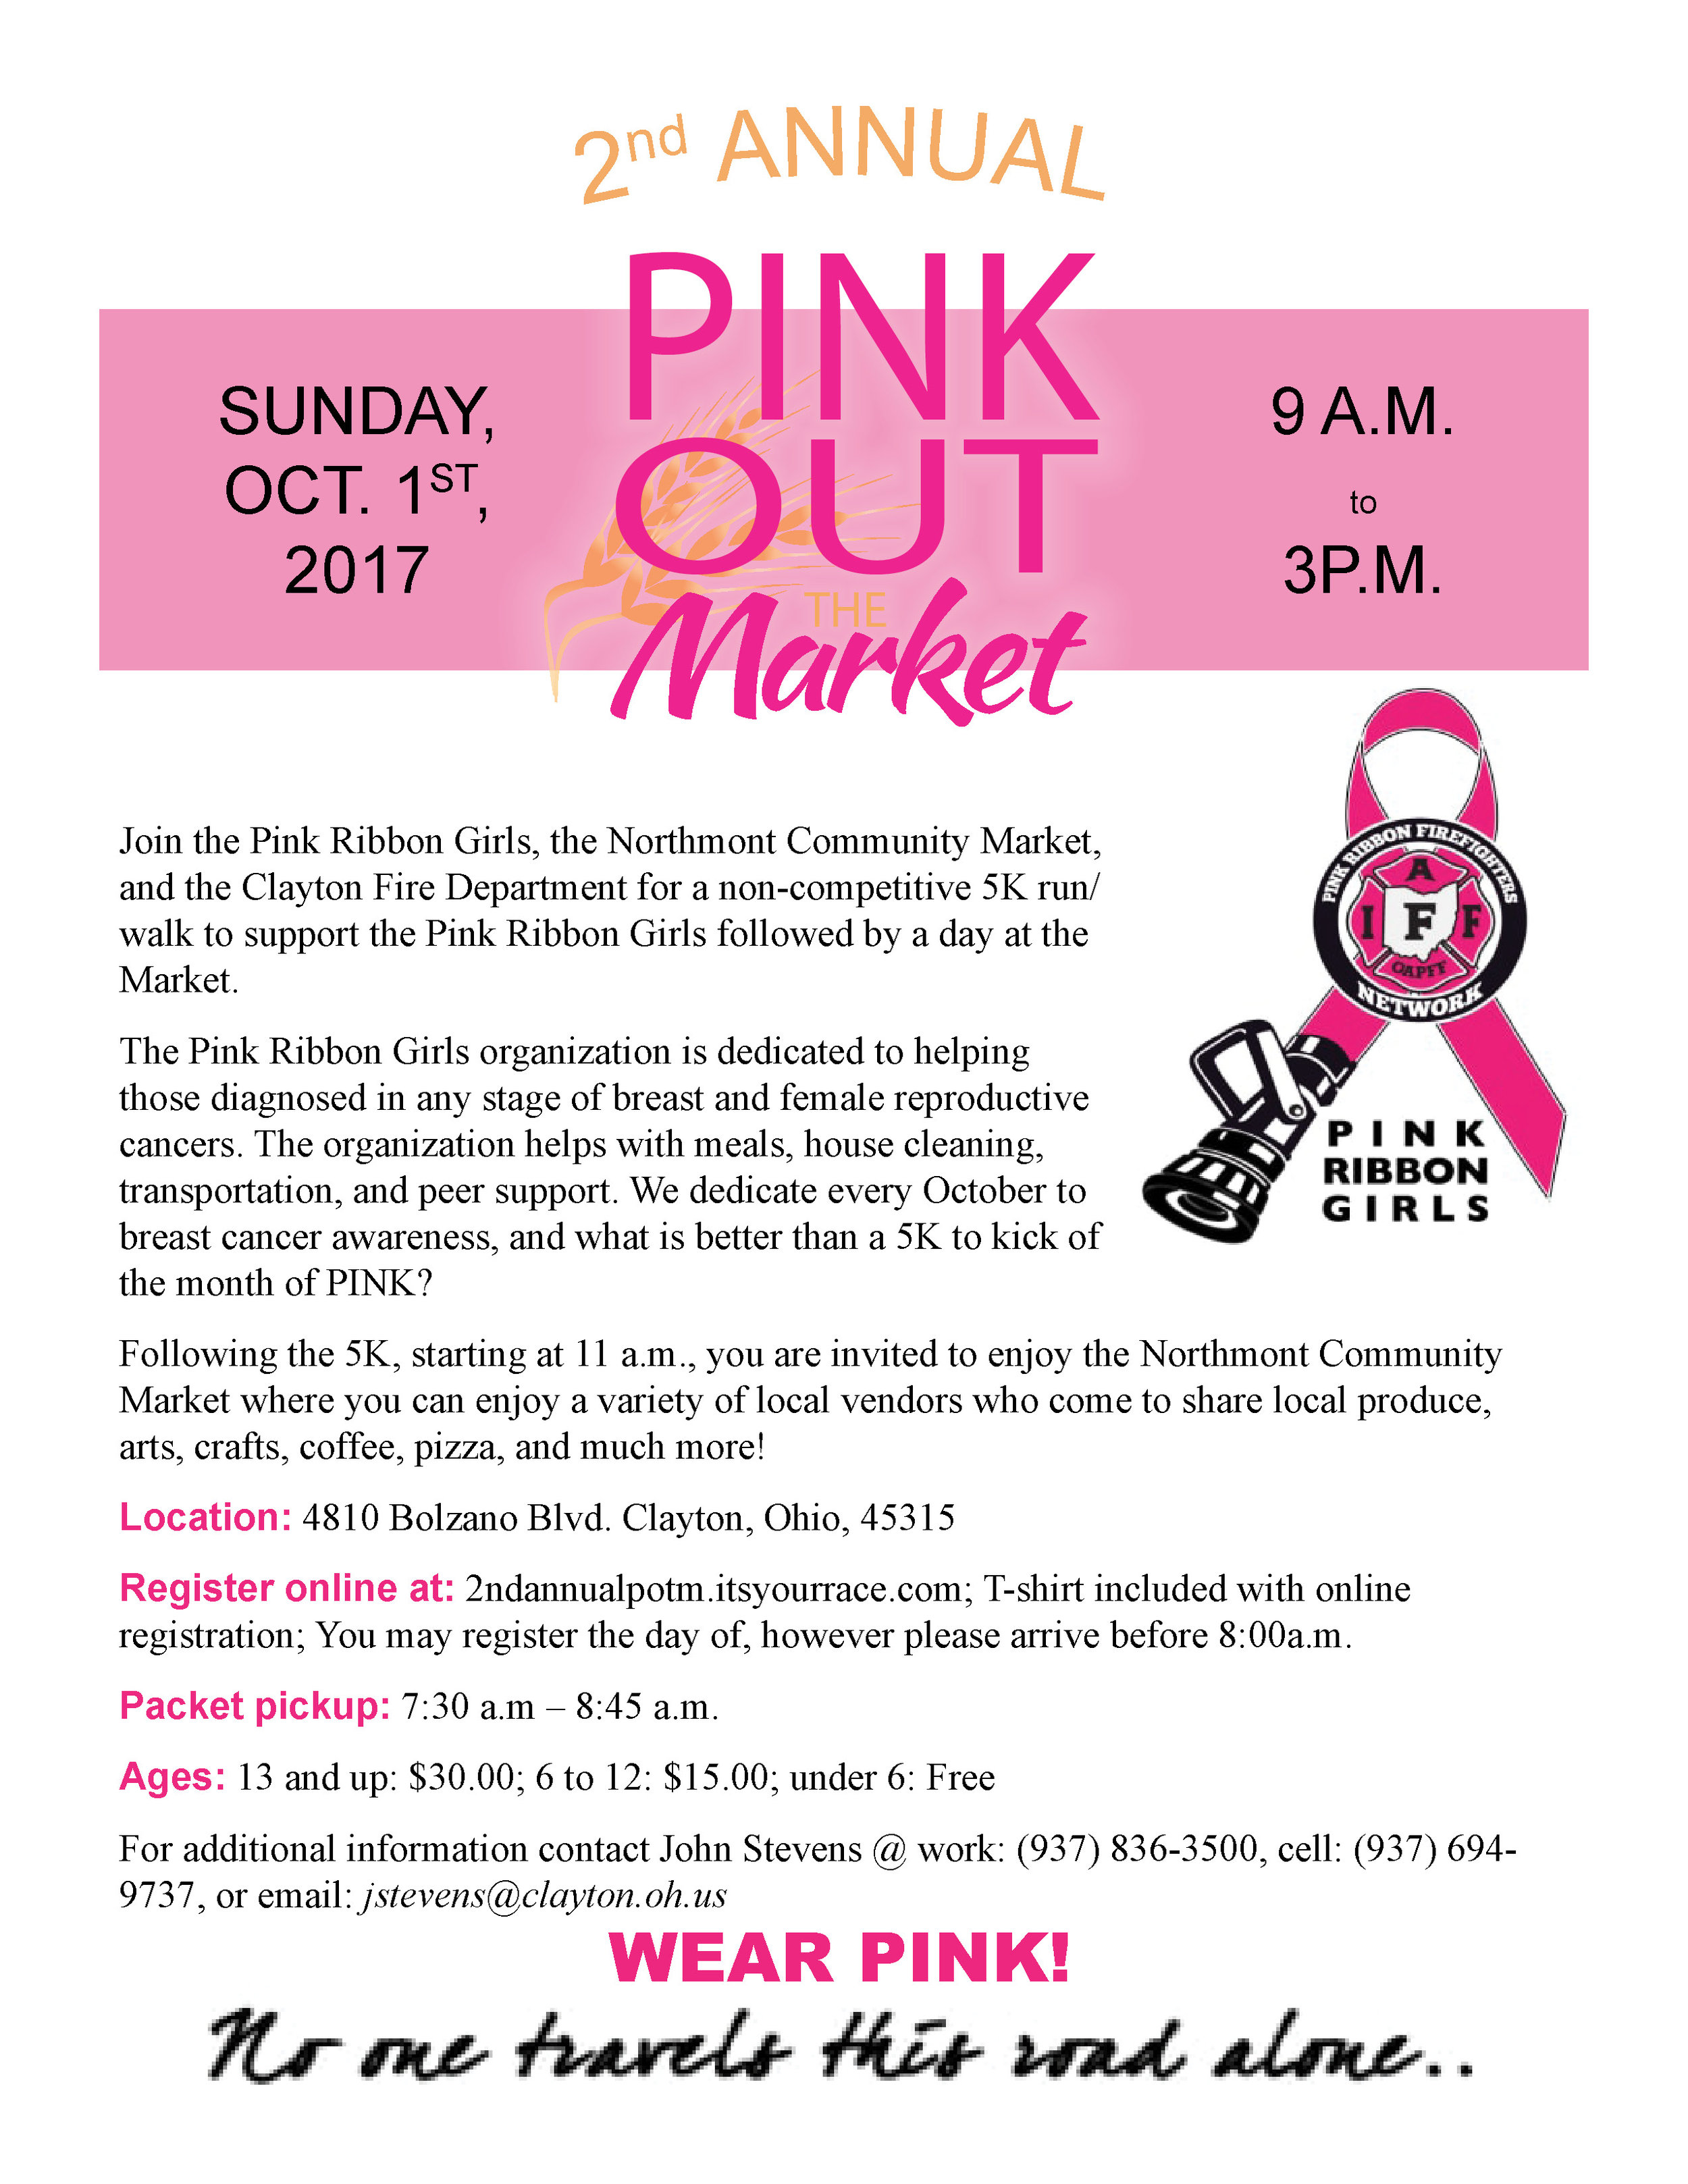 Pink Out the Market Flyer.jpg